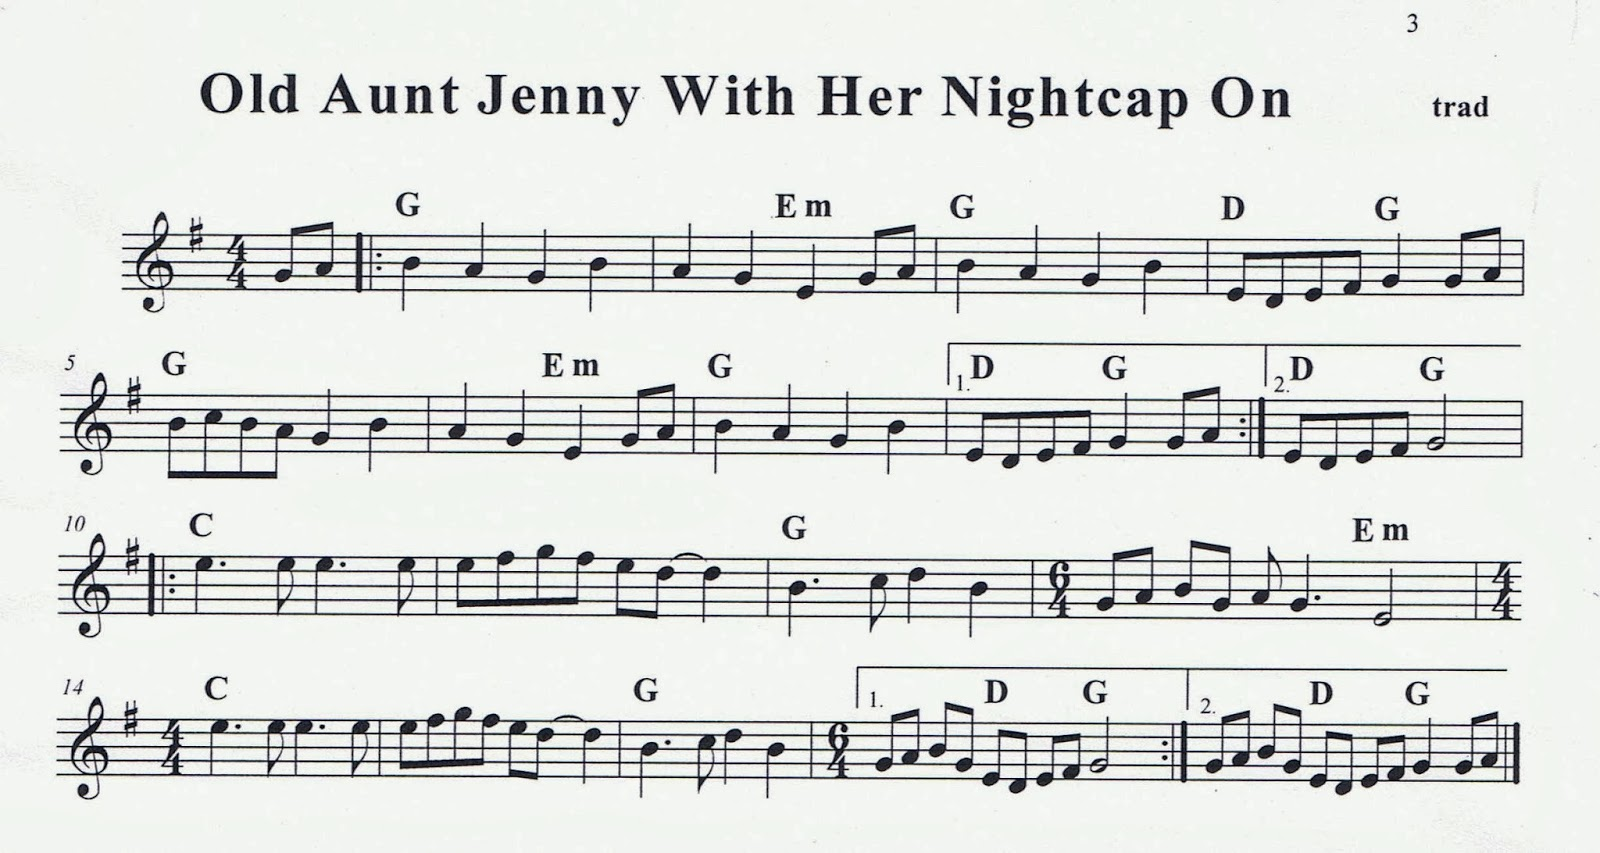 tbanjo: Old Aunt Jenny with Her Nightcap On - Played Slow